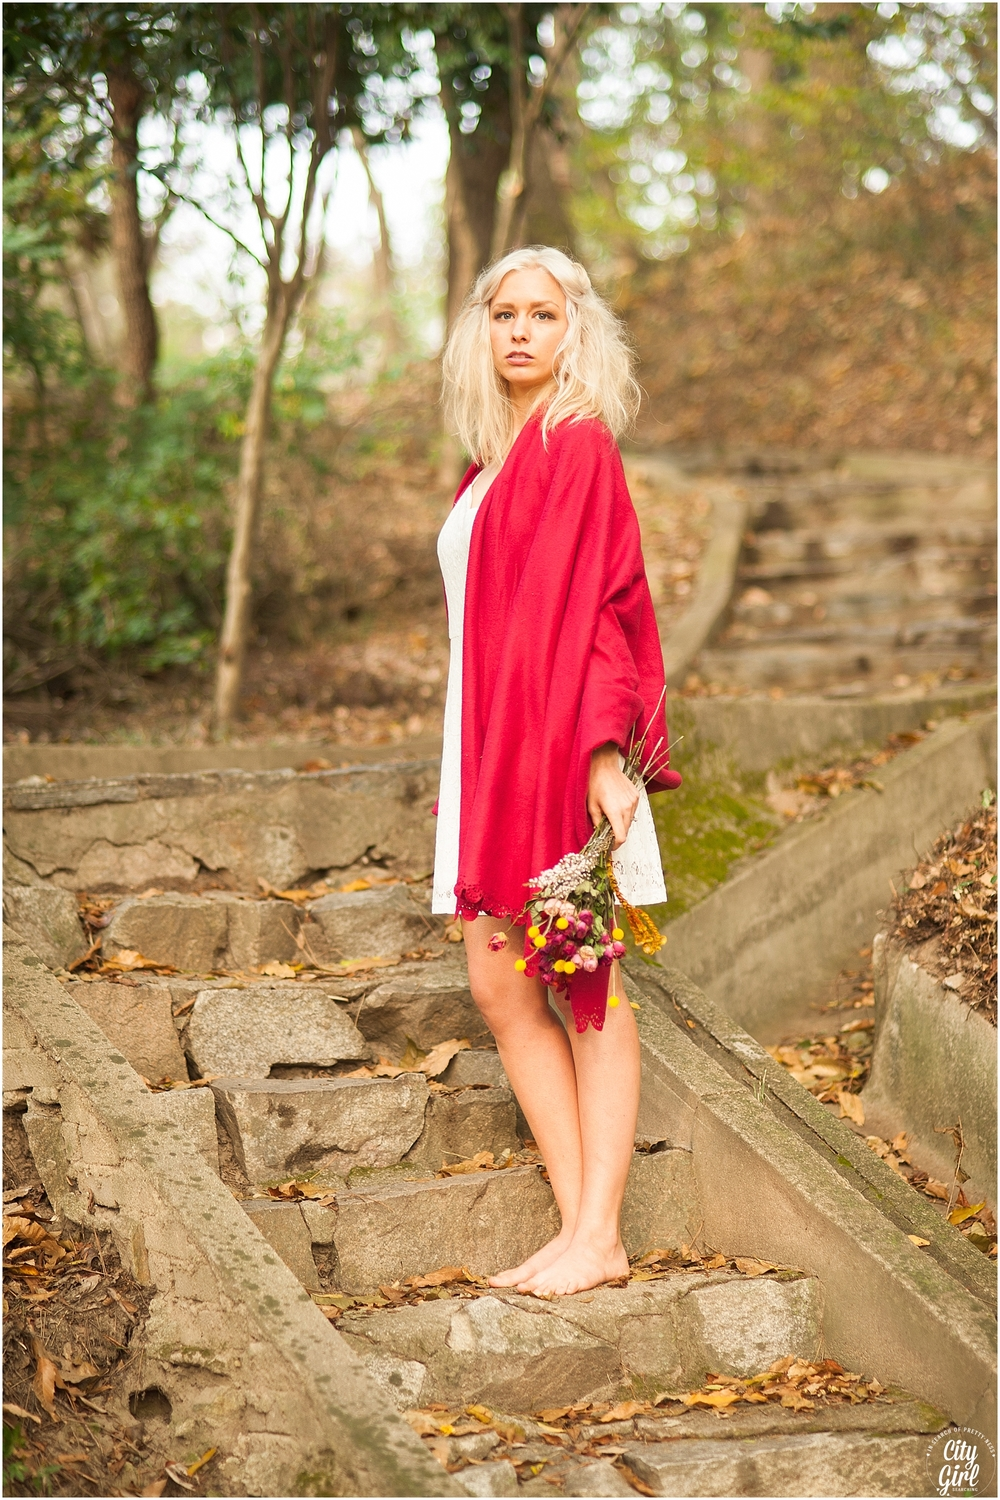 Red Riding Hood Styled Photoshoot South Korea CityGirlSearching Photography (41 of 95).jpg